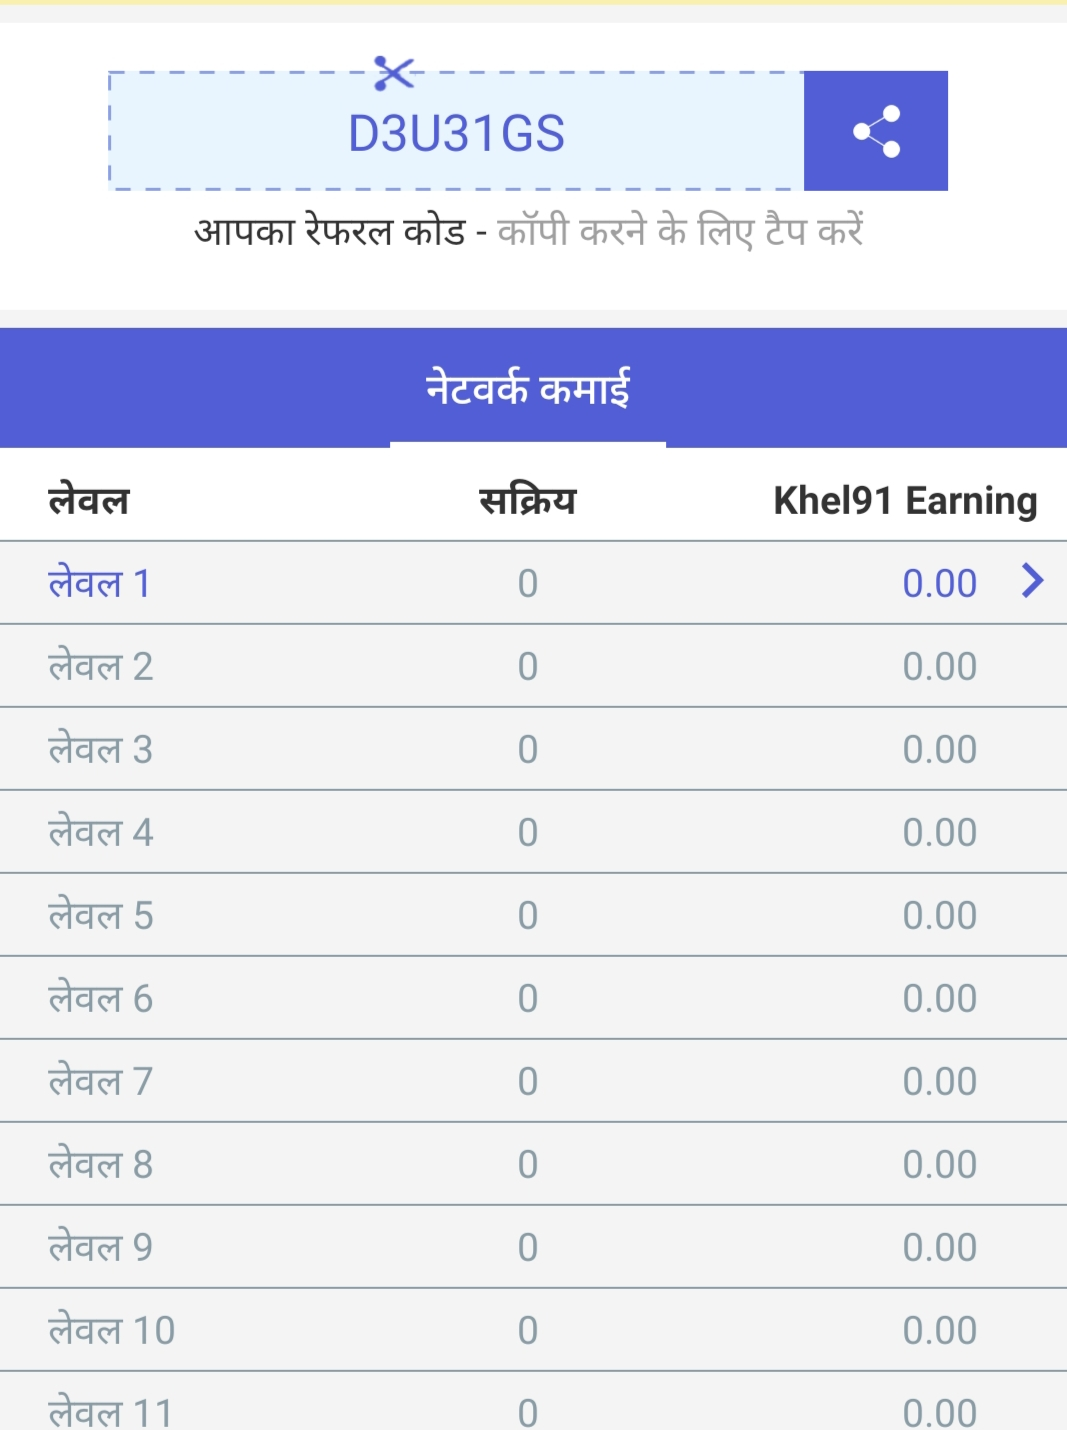 [Paytm Loot] Khel91 Referral Code - Rs.5/ Refer Upto 15 Level